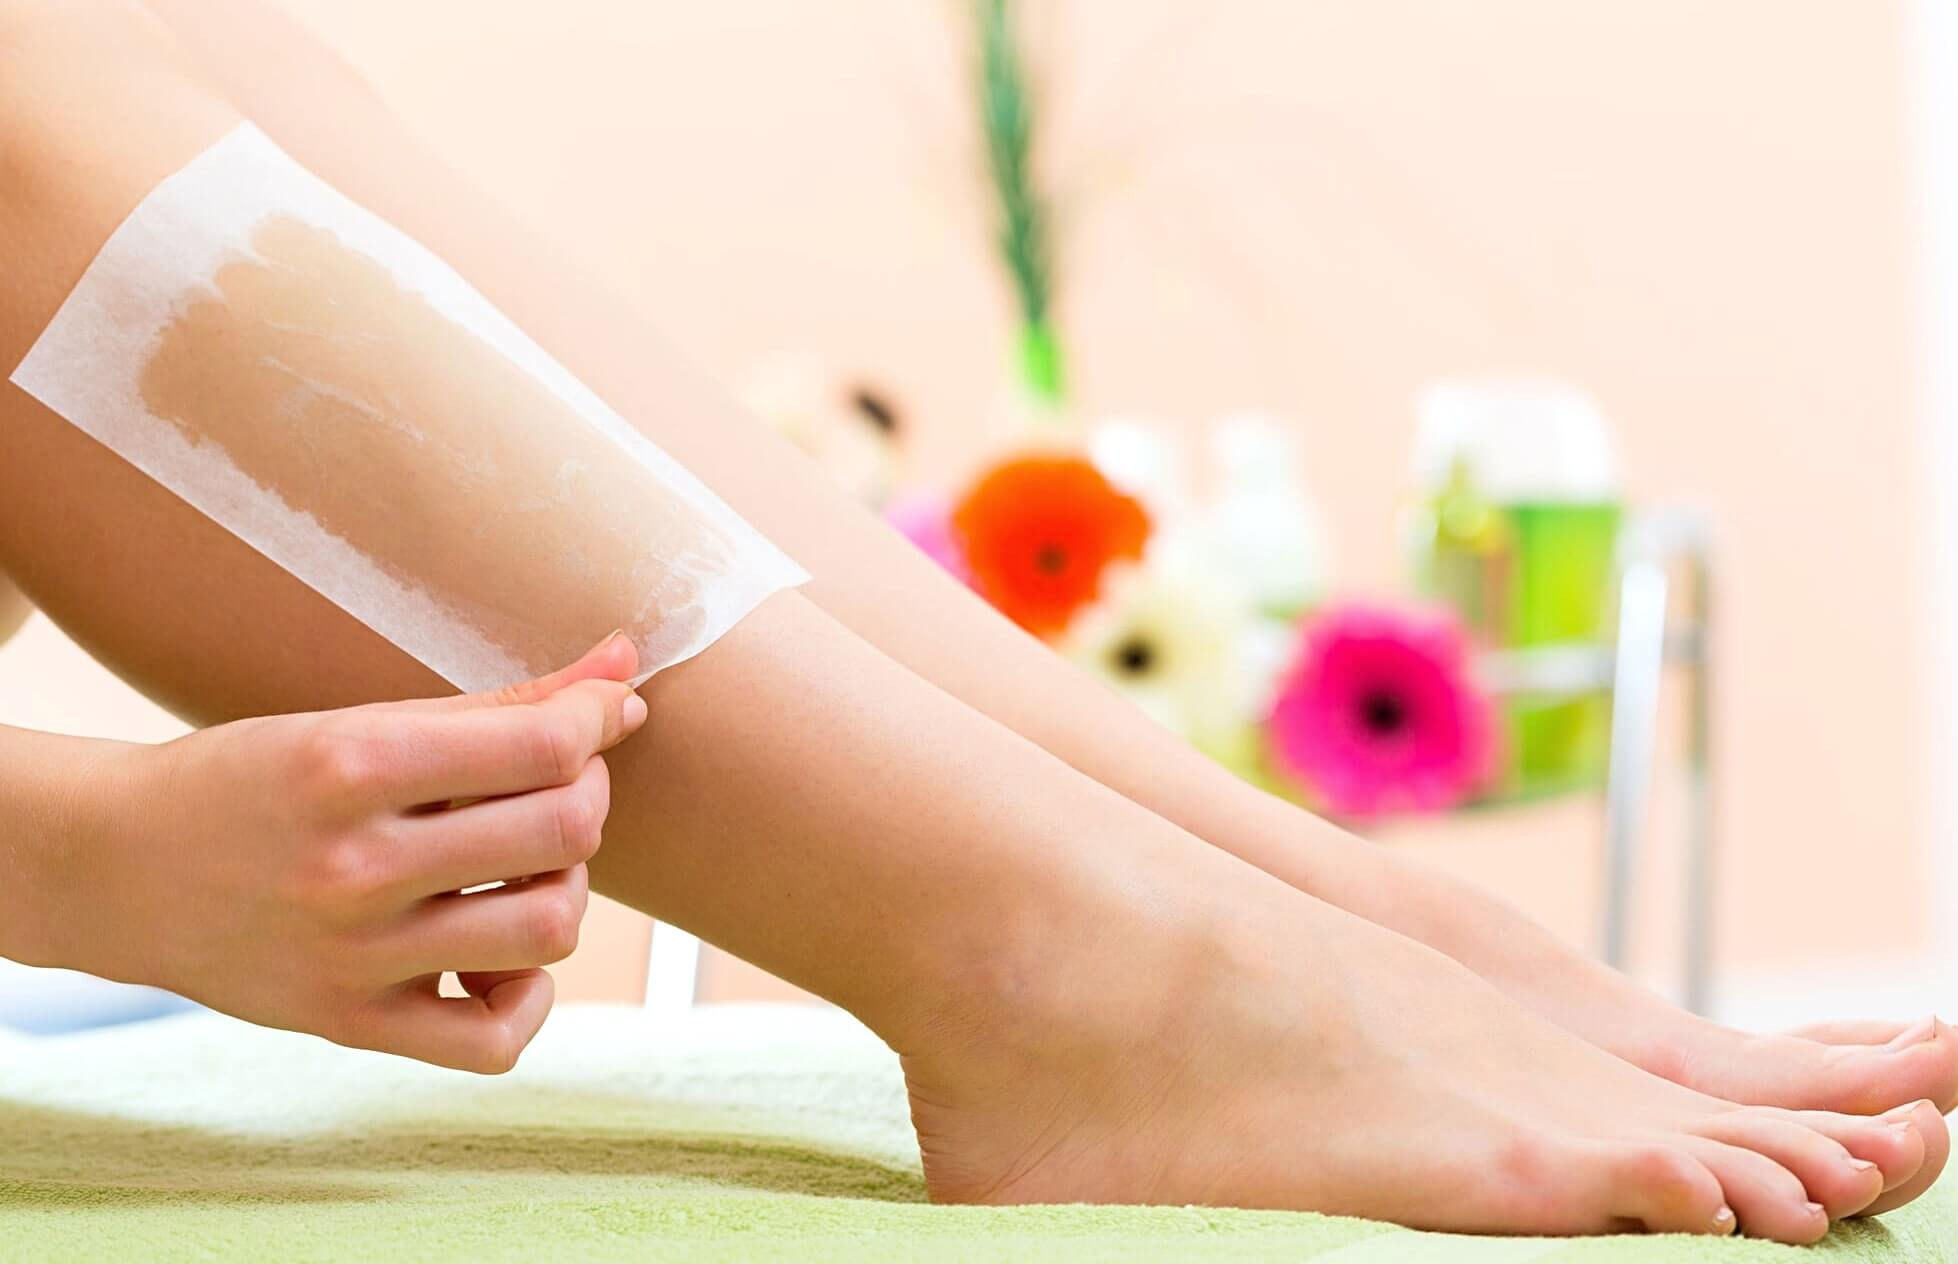 What Can You Use For Waxing Strips